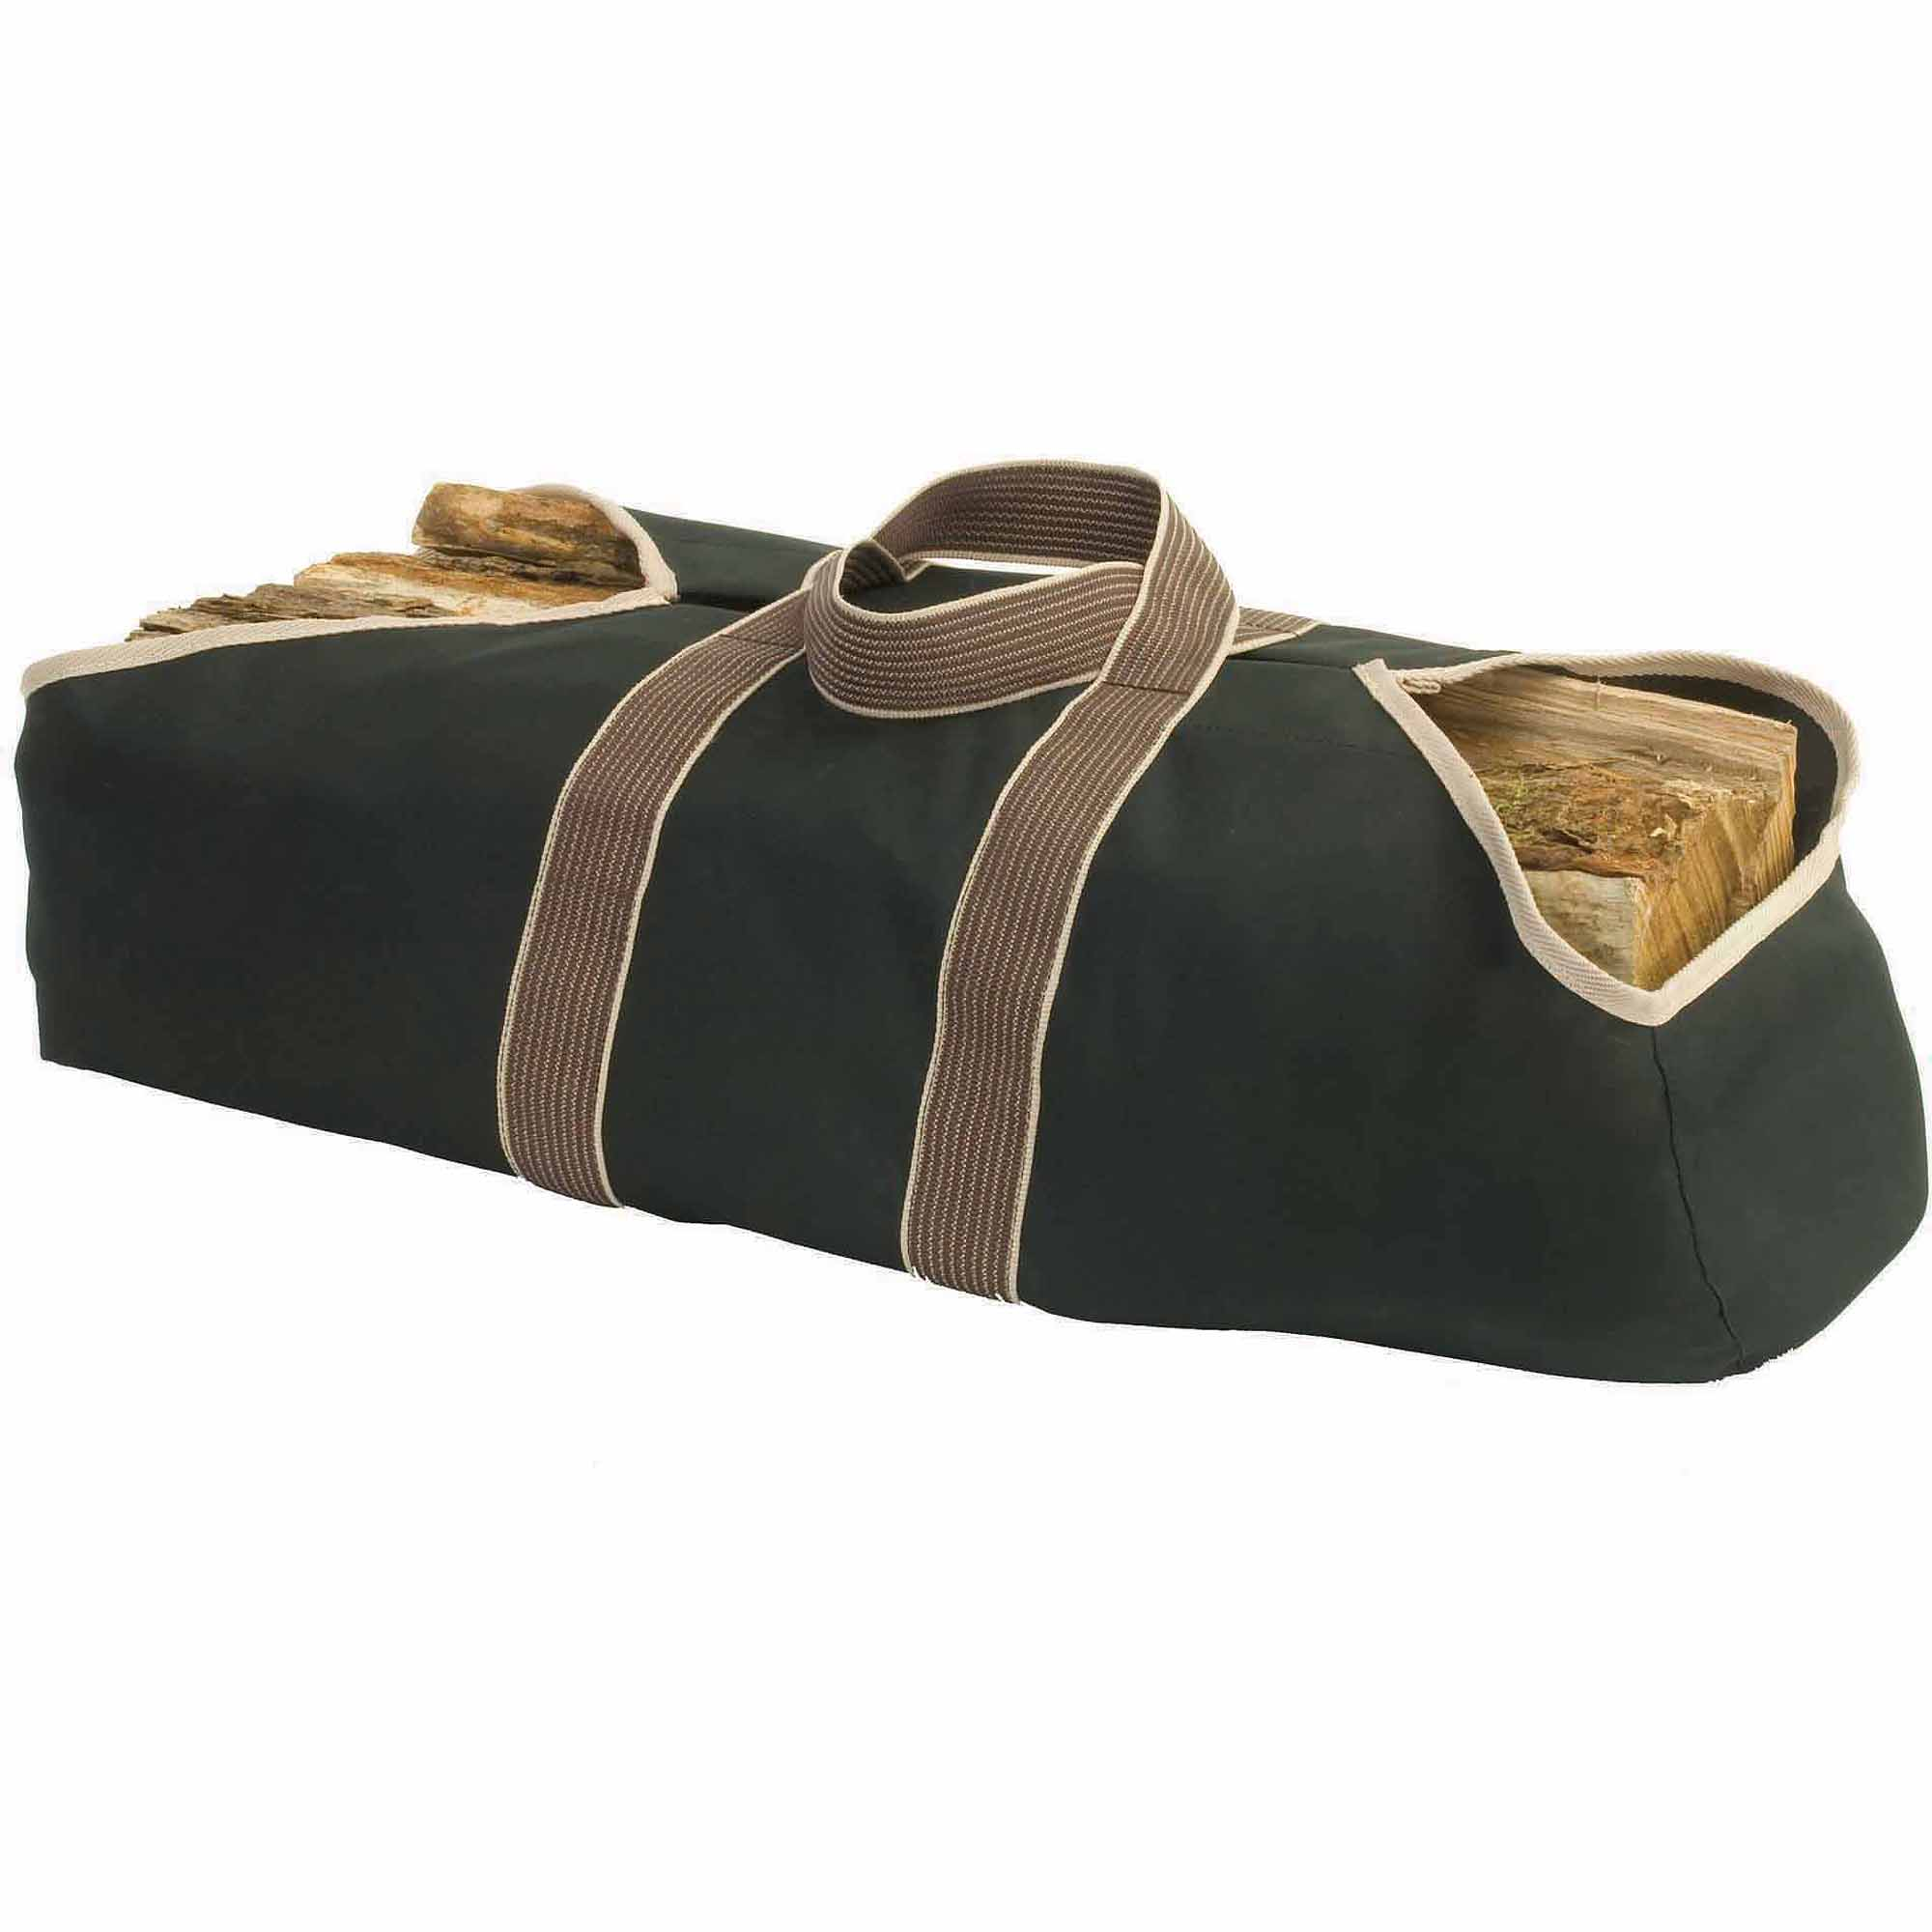 Pleasant Hearth Canvas Log Tote, Black